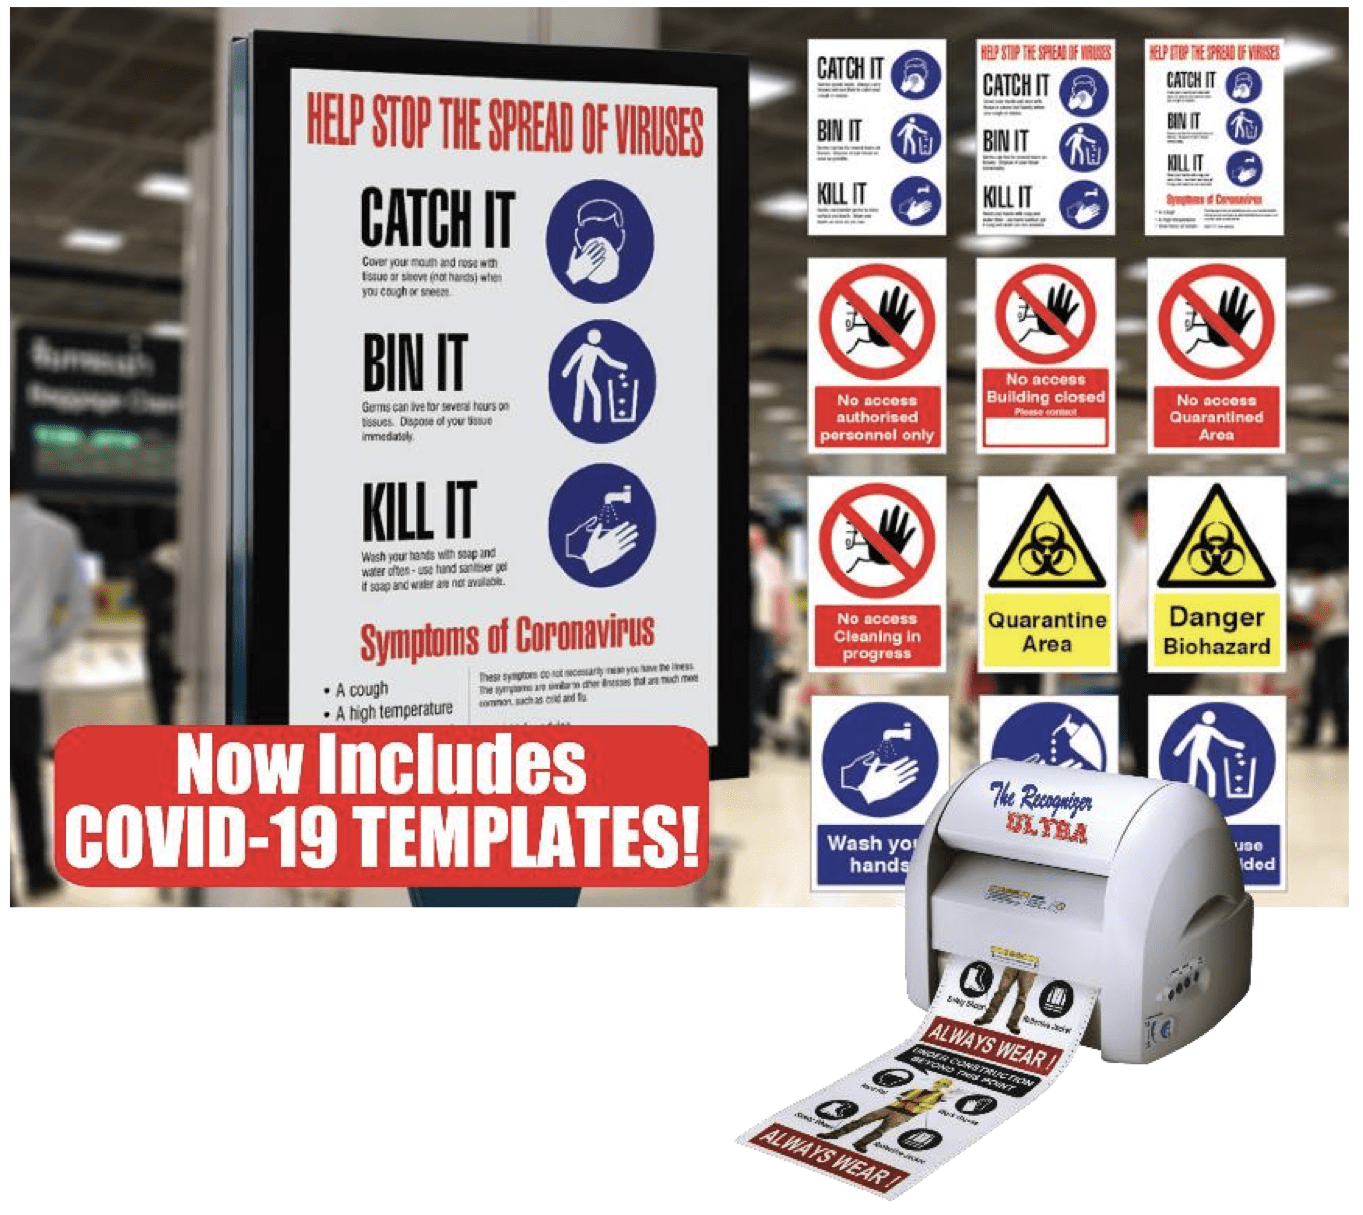 A few pictures of COVID-19 awareness signs for schools